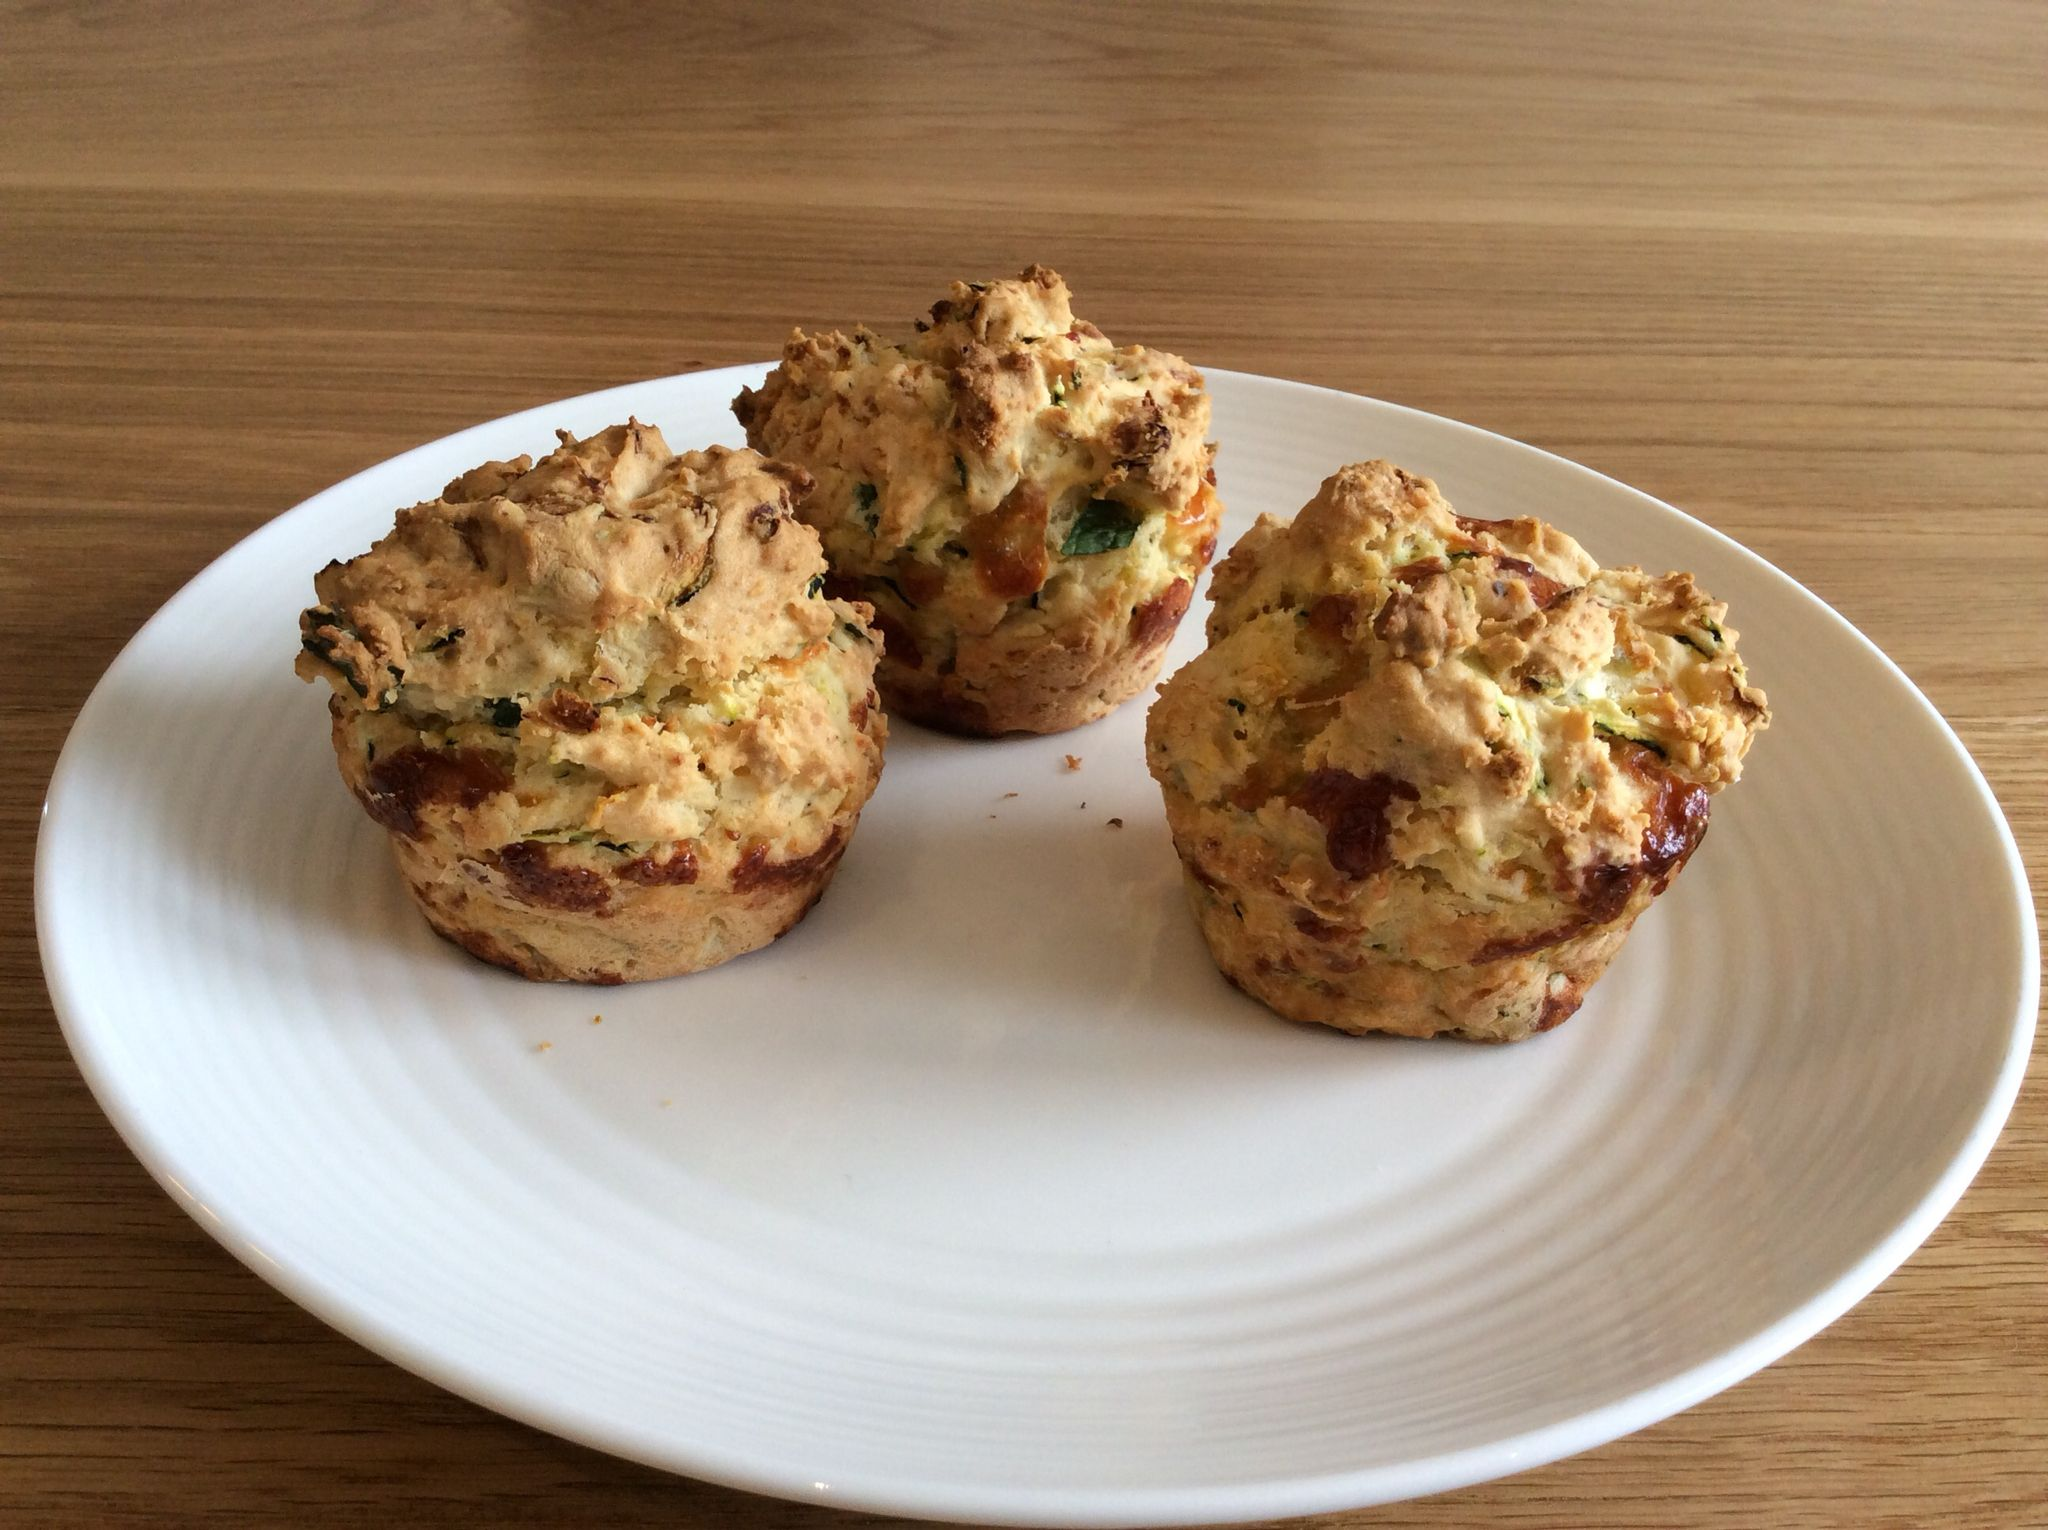 Home made savoury muffins for afternoon tea. Savory